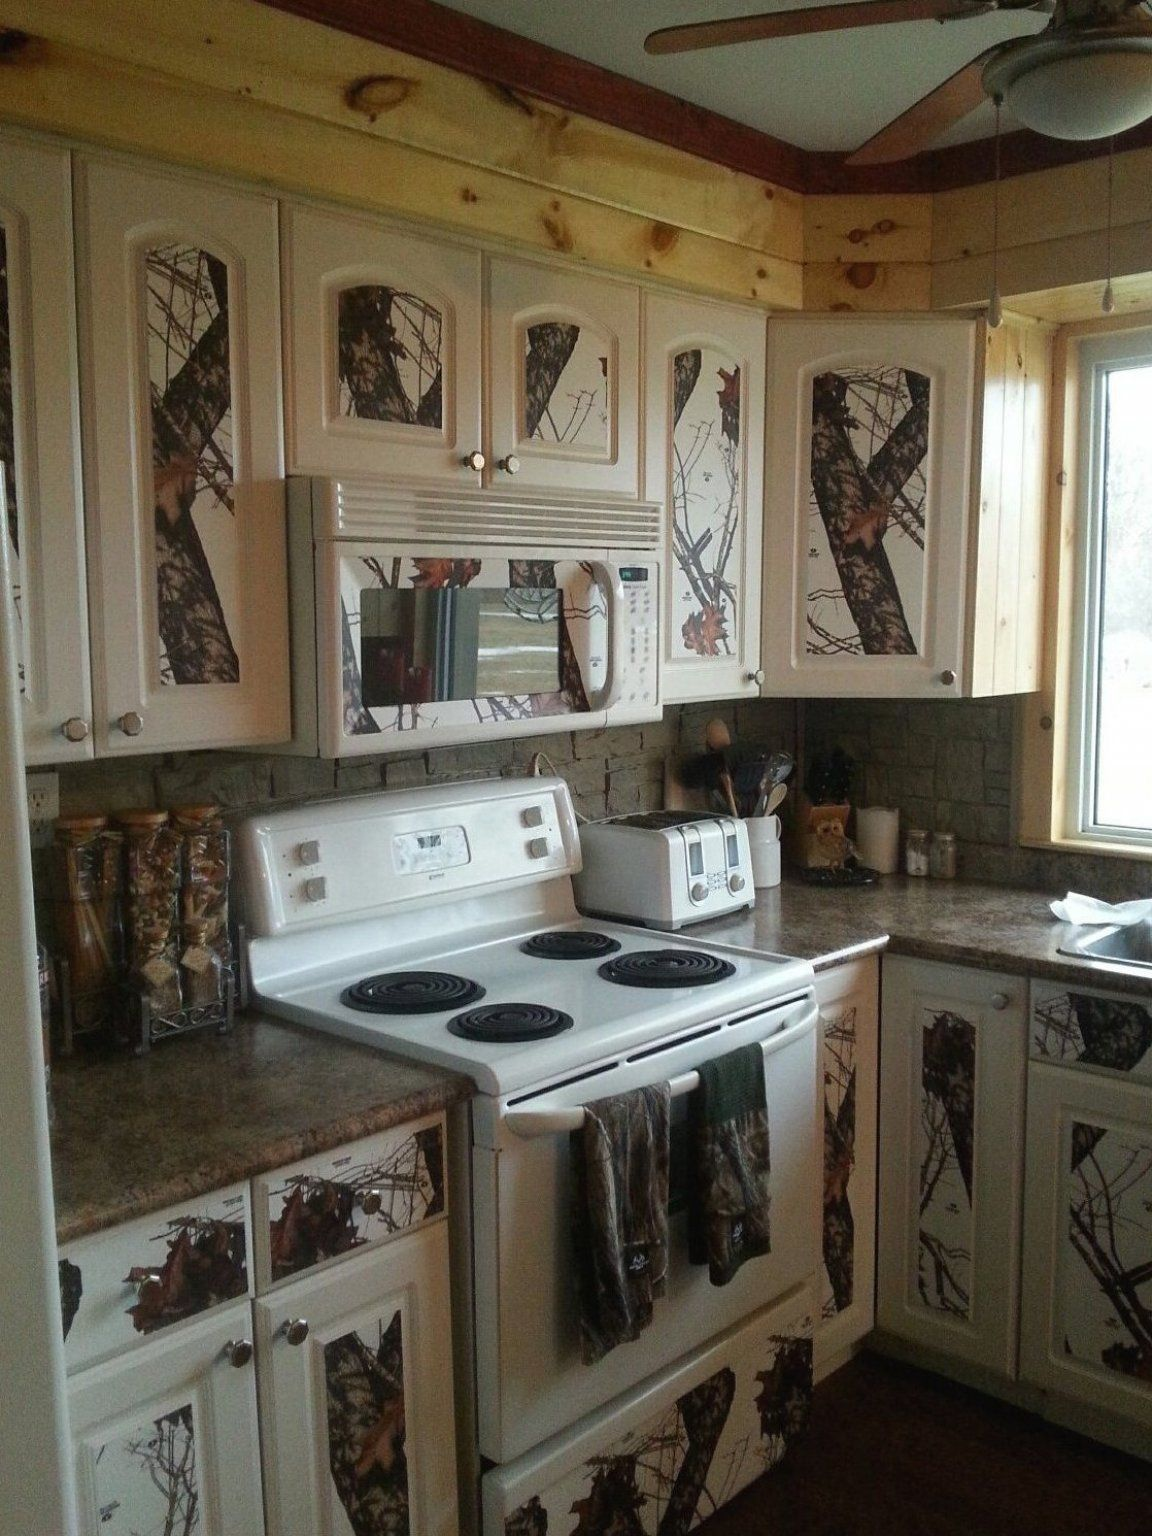 Camo Kitchen Almost Complete Easy Decorations Home Decor For Bedrooms Rustic Decor Wall D In 2020 Camo Home Decor Rustic Outdoor Kitchens Camo Living Rooms